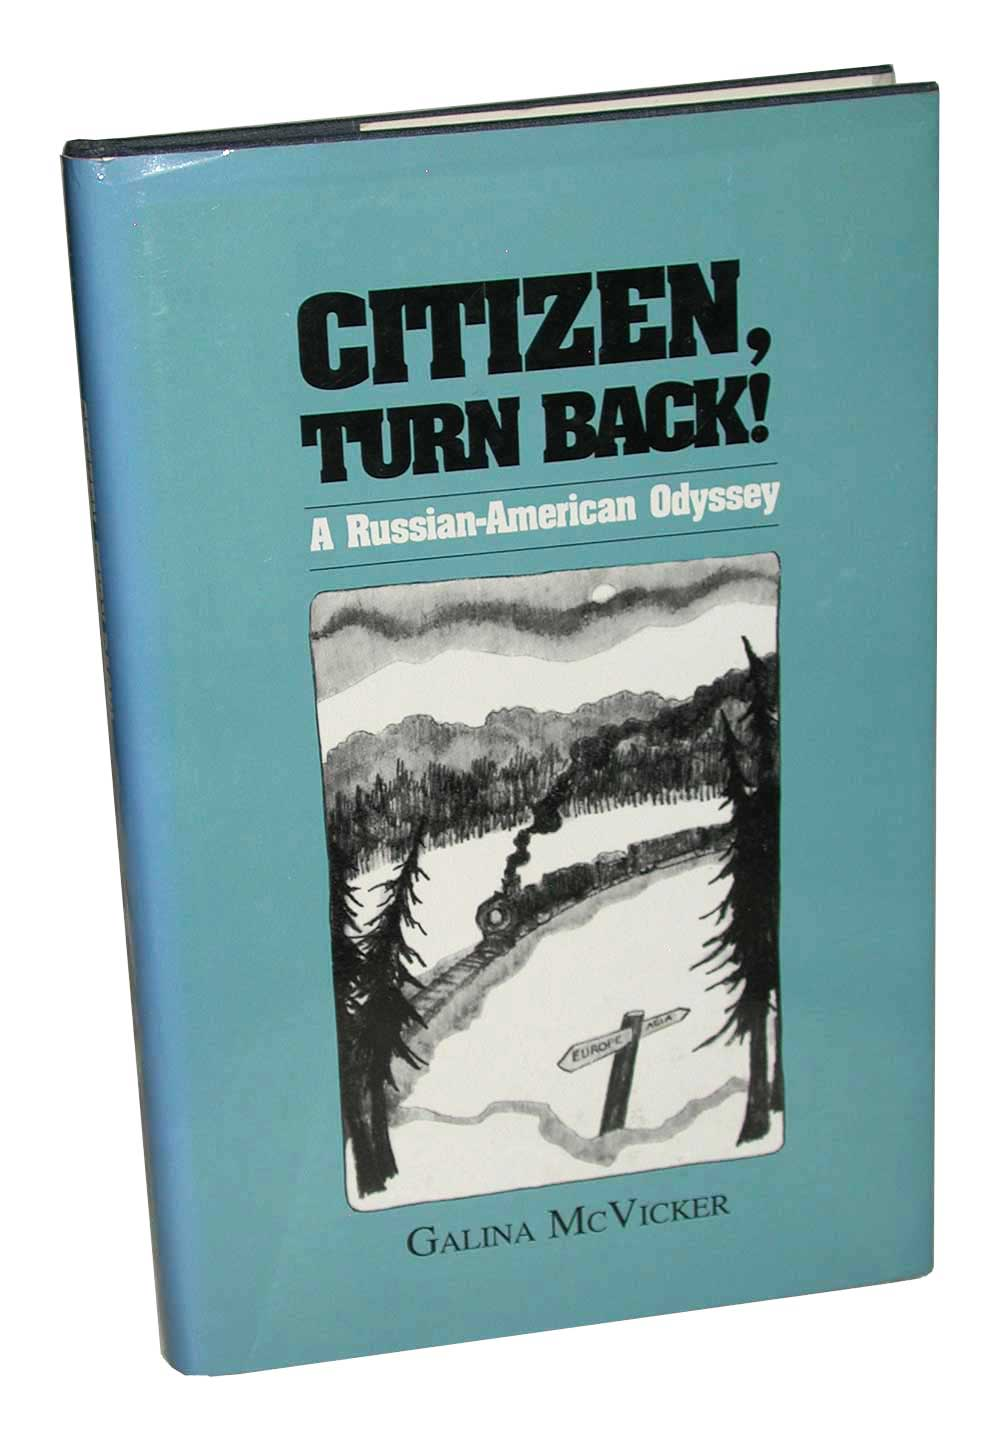 Image for Citizen, Turn Back!: A Russian-American Odyssey